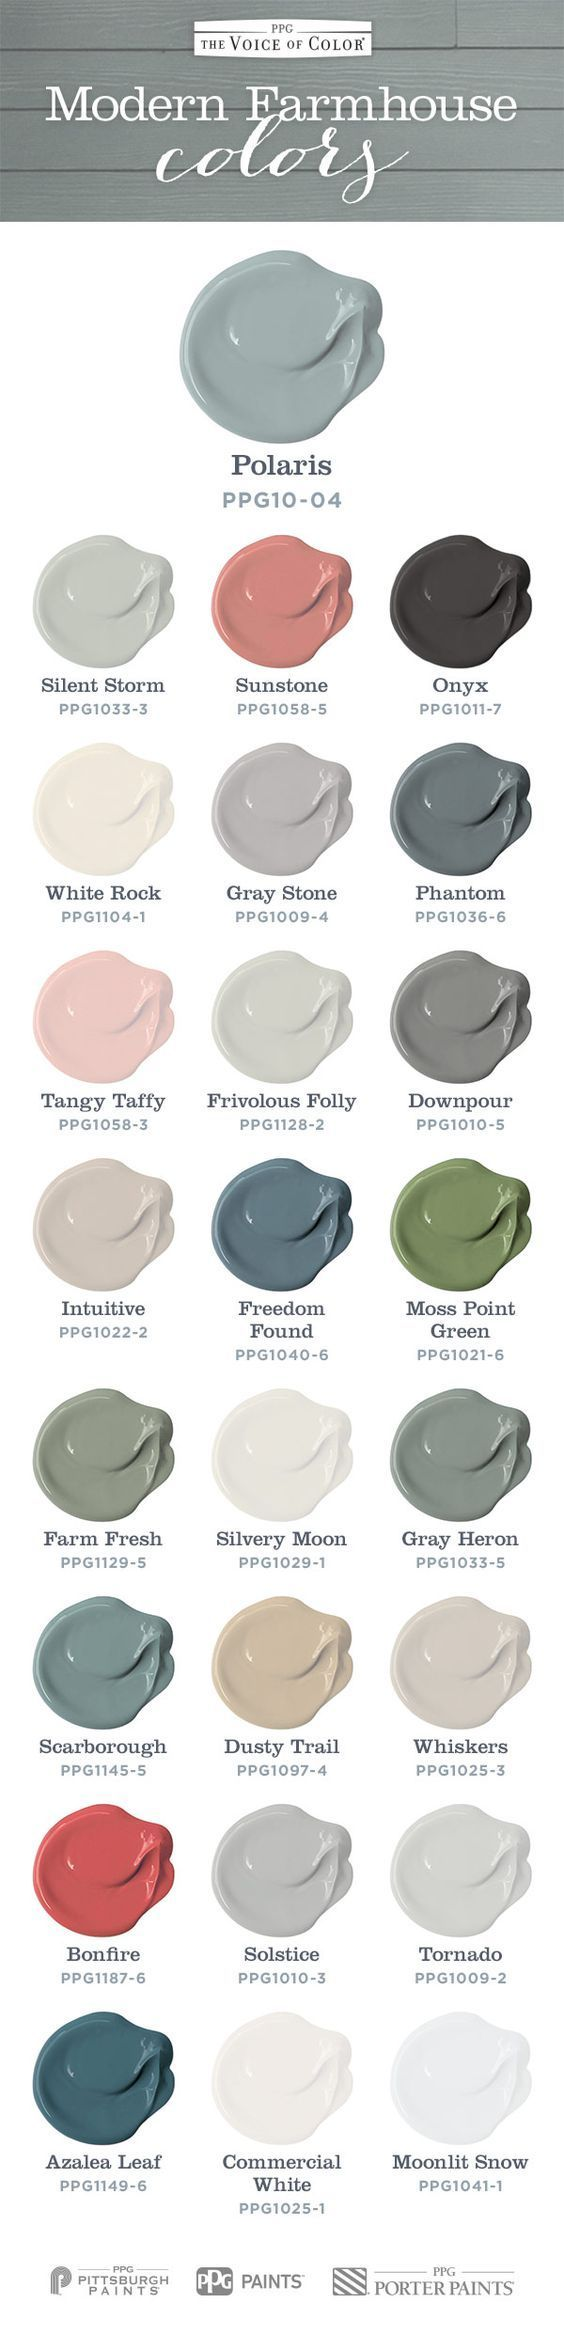 Soft welcoming Modern Farmhouse colors. Voice of Color presents a beautiful farmhouse color collection.